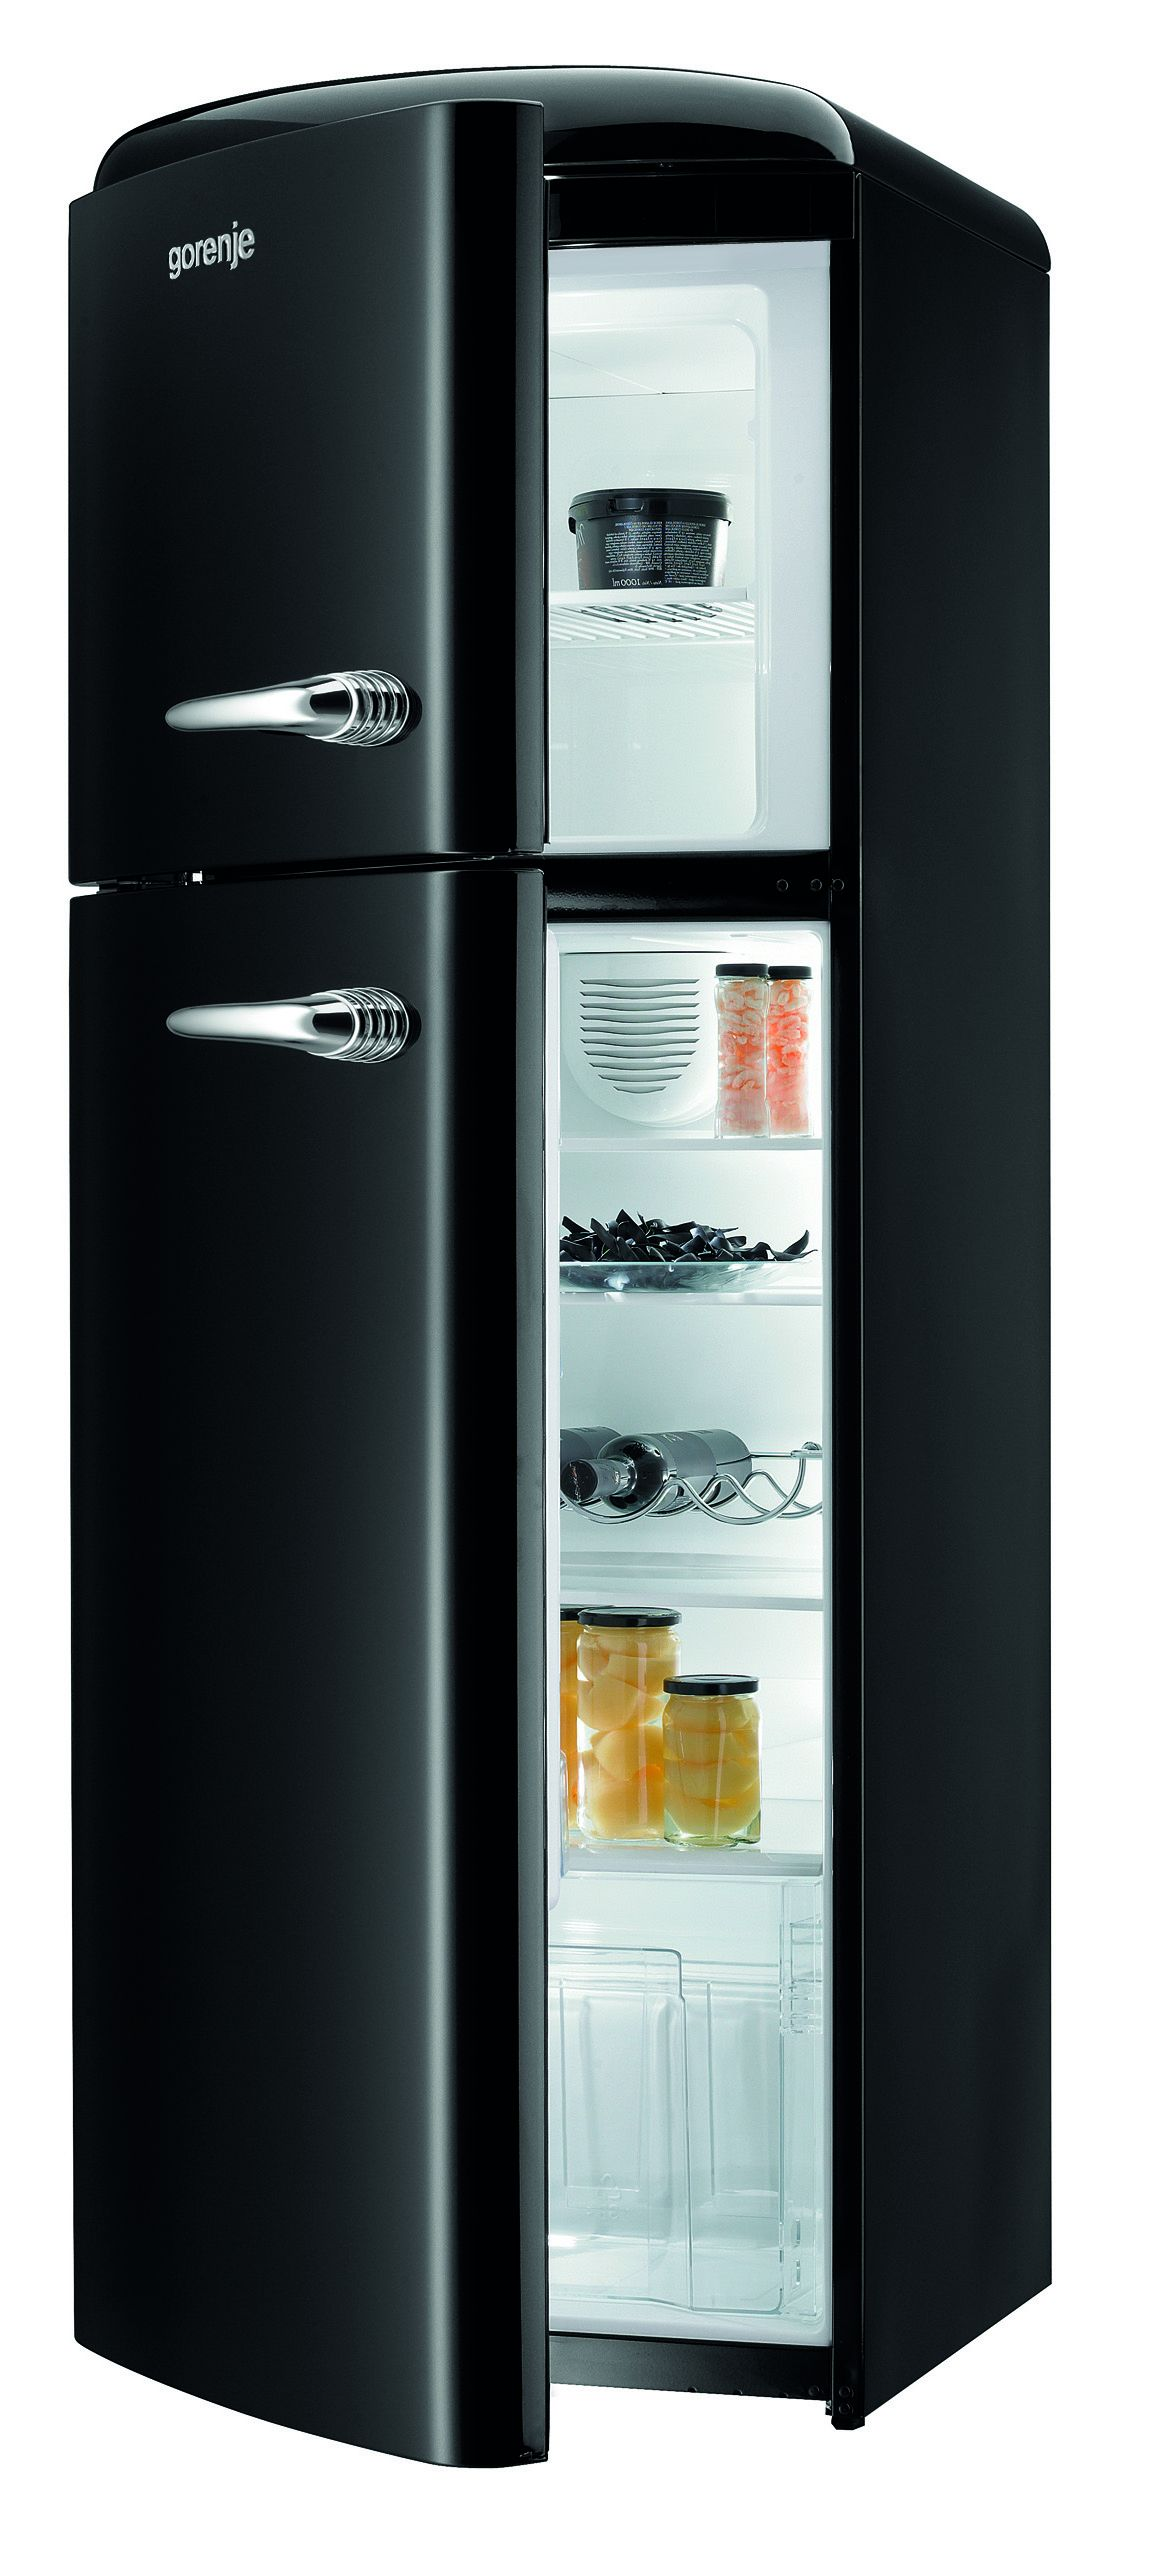 Gorenje Kühlschrank Gefrierkombination Gorenje Retro Collection Rf 603010 Kühl Gefrier Kombination Strom